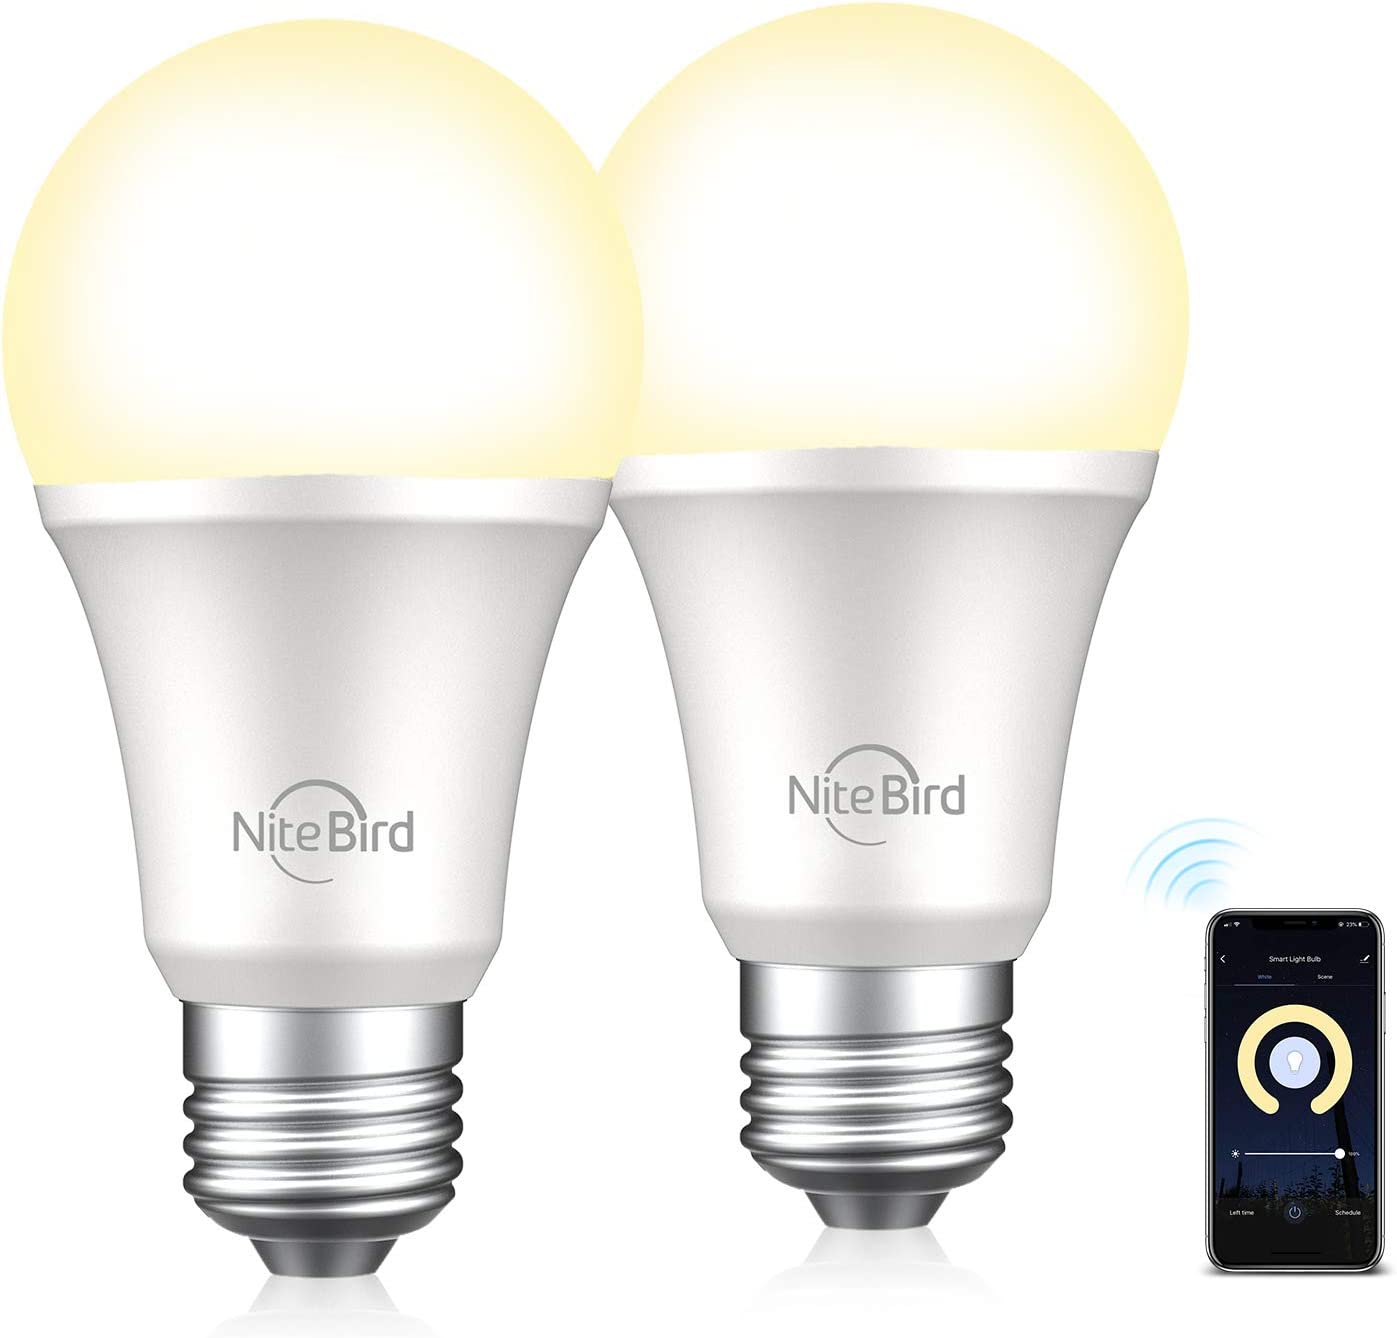 75W Equivalent Smart Light Bulb Compatible with Alexa Google Home No Hub Required 4 Pack NiteBird A19 E26 Wifi Dimmable Warm White 2700K LED Lights Bulbs